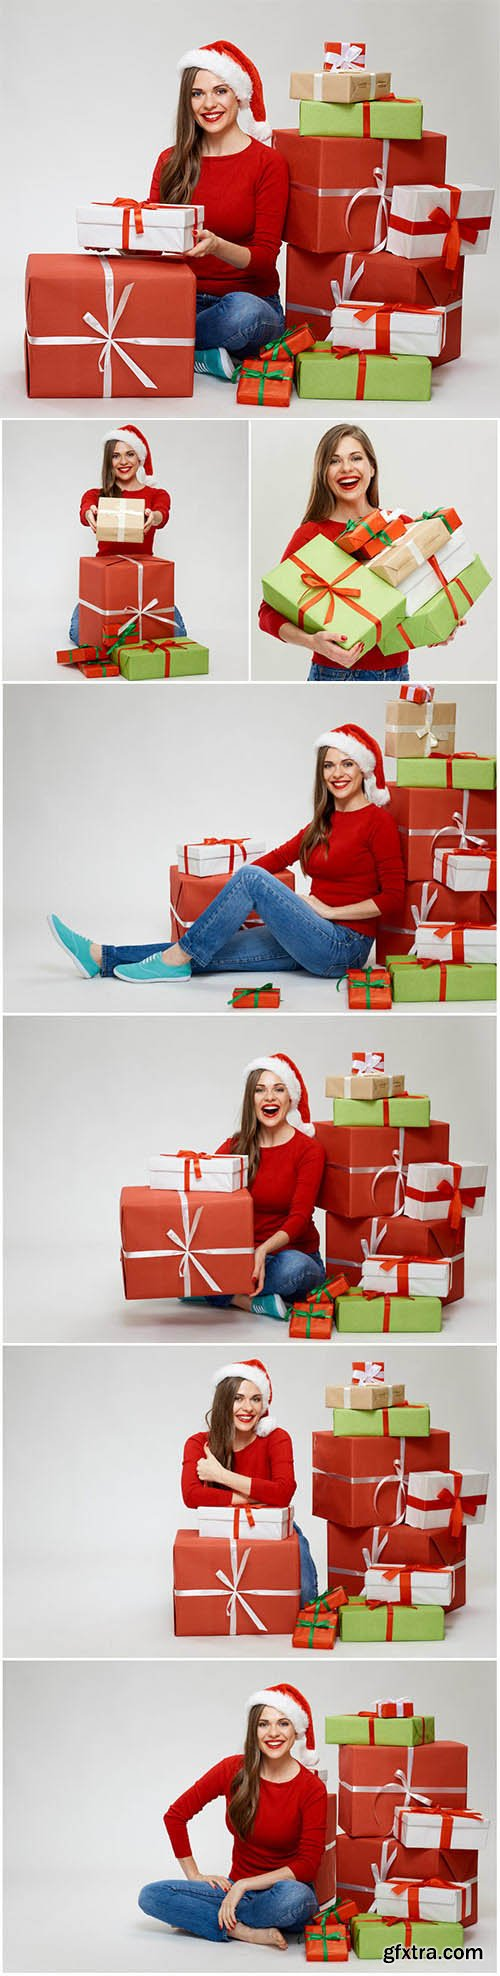 New Year and Christmas stock photos №80